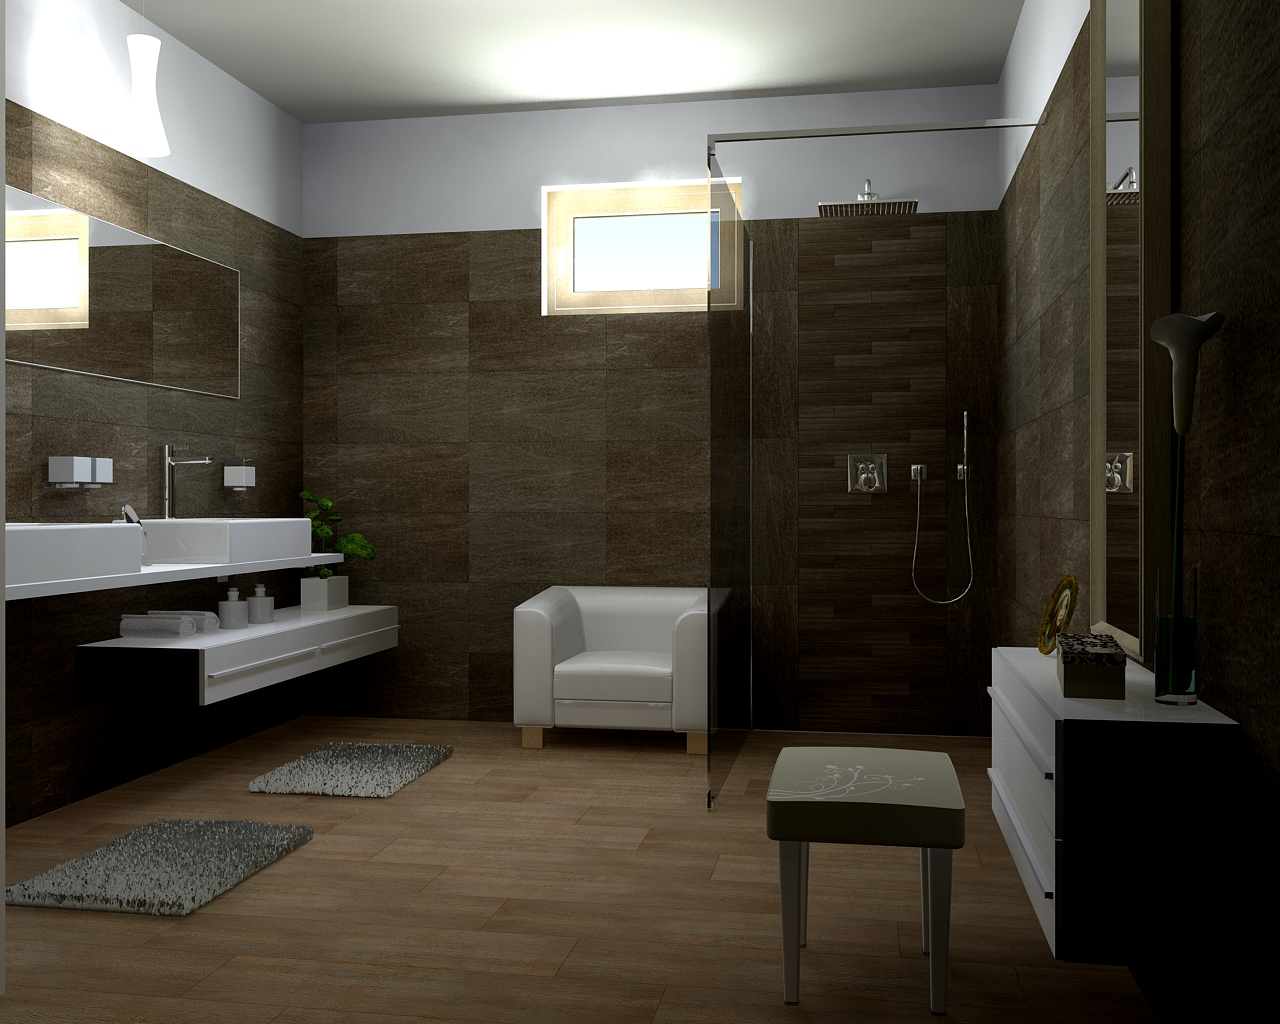 caesar verse2 bathroom by s pi brigitta l ta ker kft on. Black Bedroom Furniture Sets. Home Design Ideas